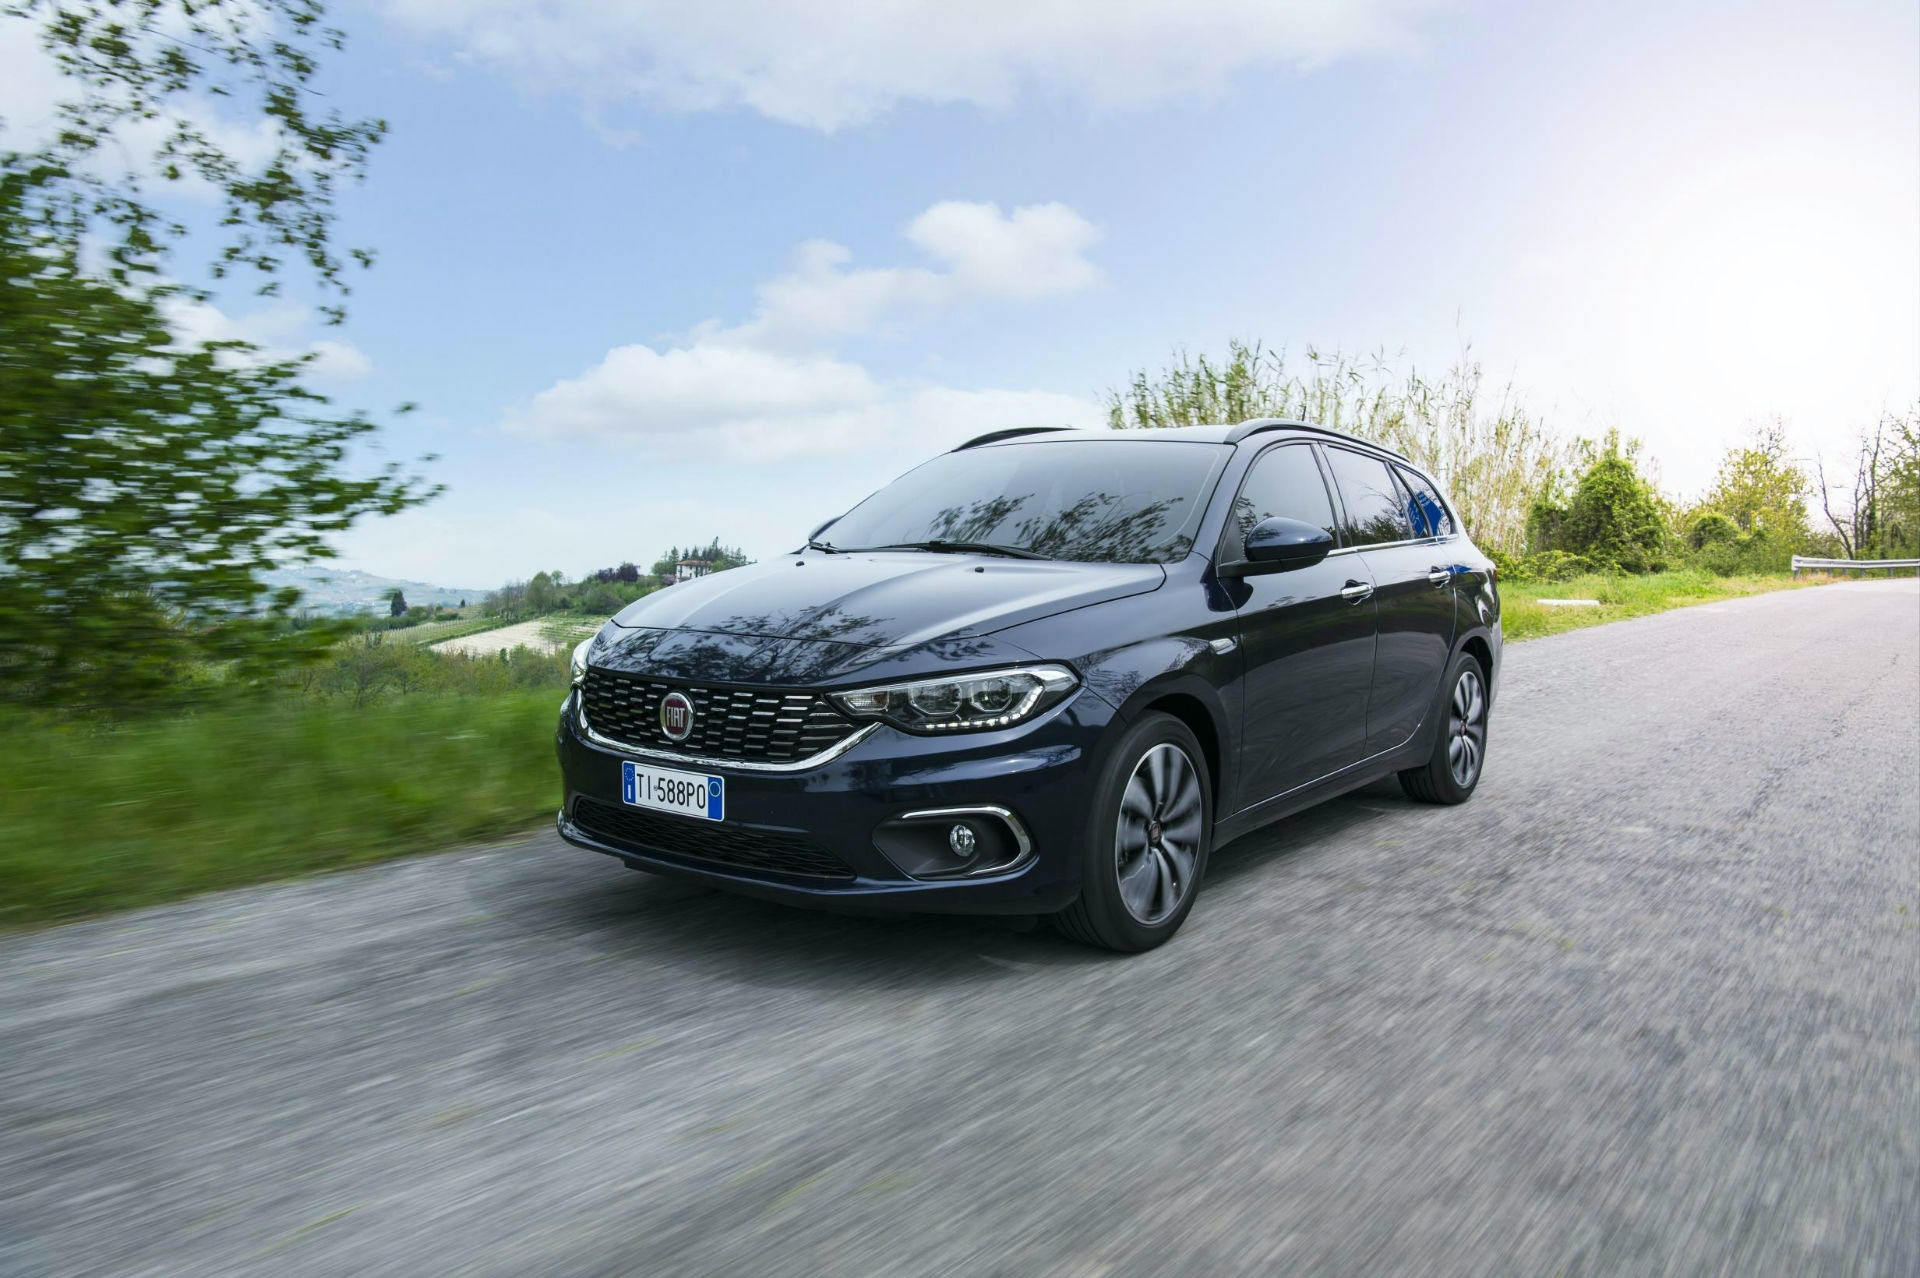 It may not be pretty but the Fiat Tipo is a great car for not a lot of money.